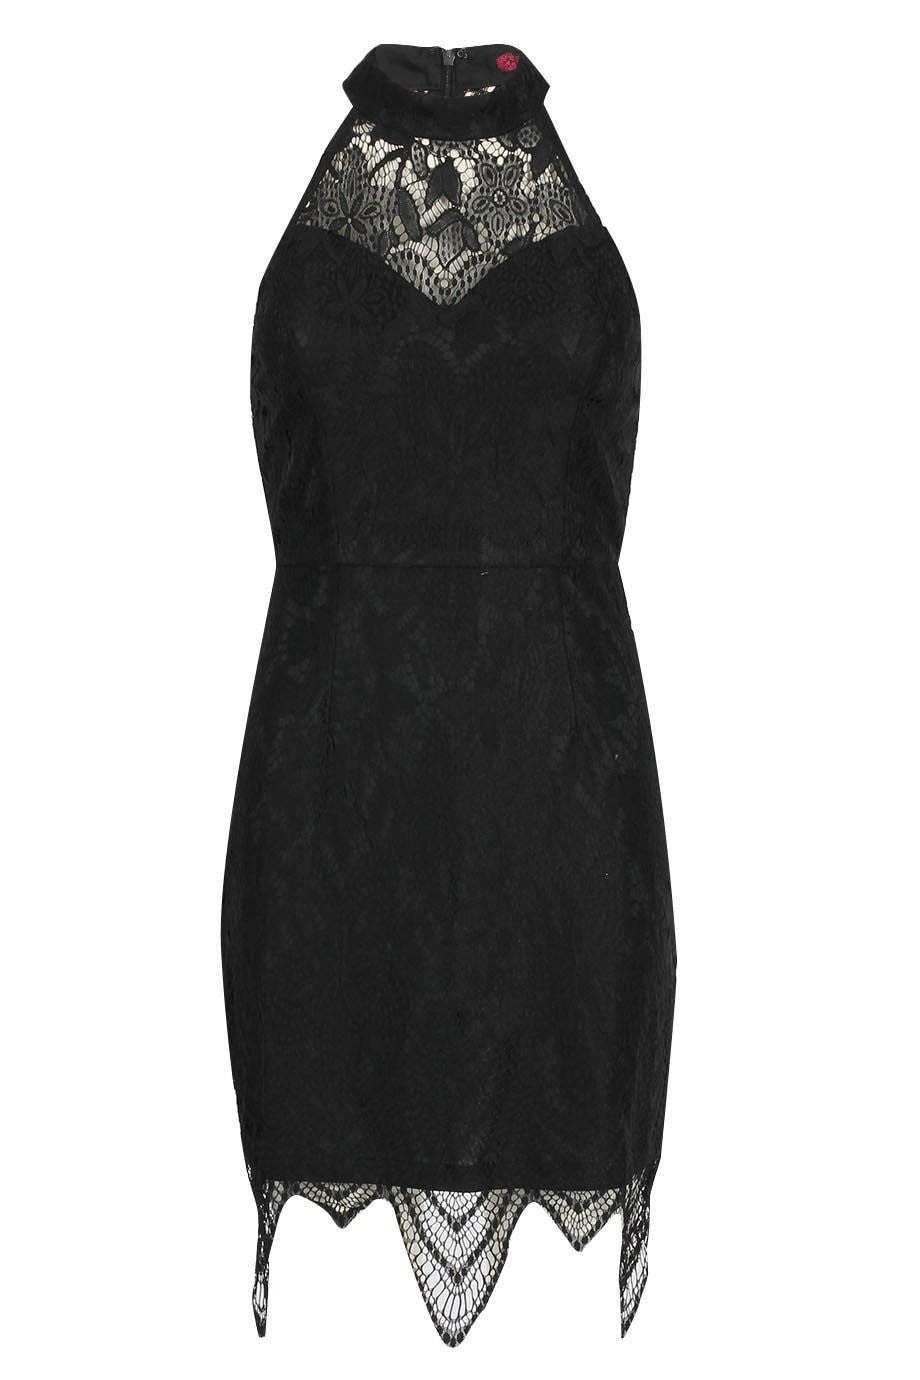 Anna Lace Flapper Style Dress - Budget Babe Couture